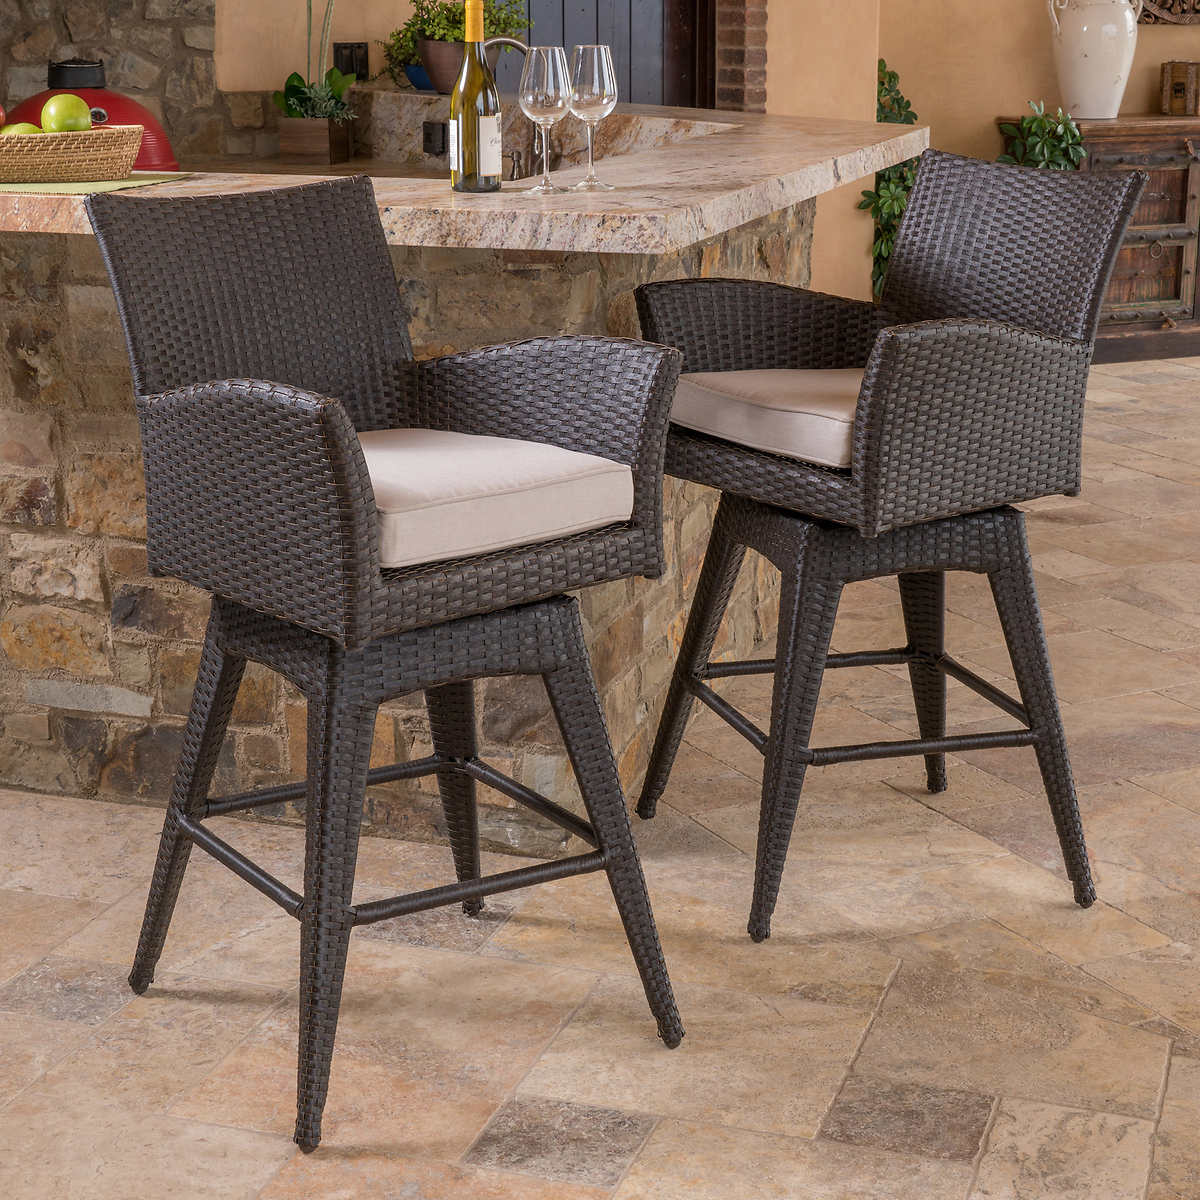 Outdoor bar table and stools - Santa Fe 2 Piece Barstool Set By Mission Hills